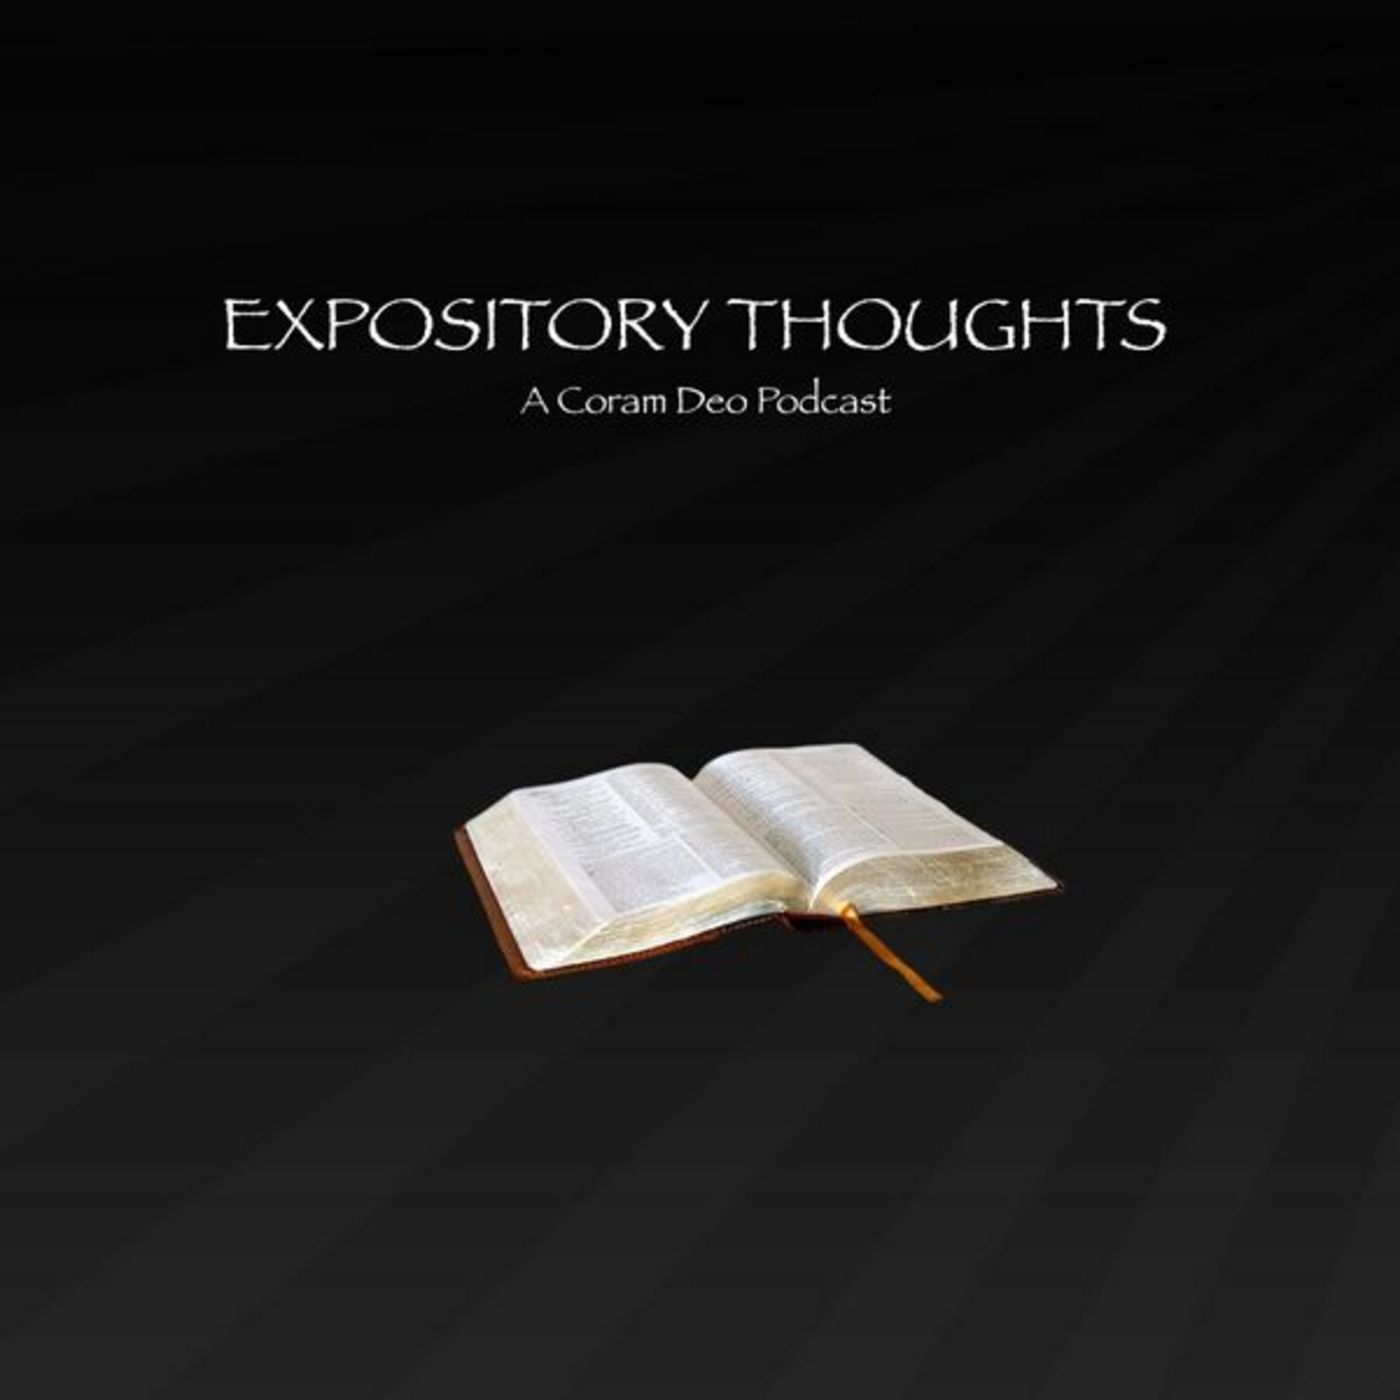 <![CDATA[Expository Thoughts]]>